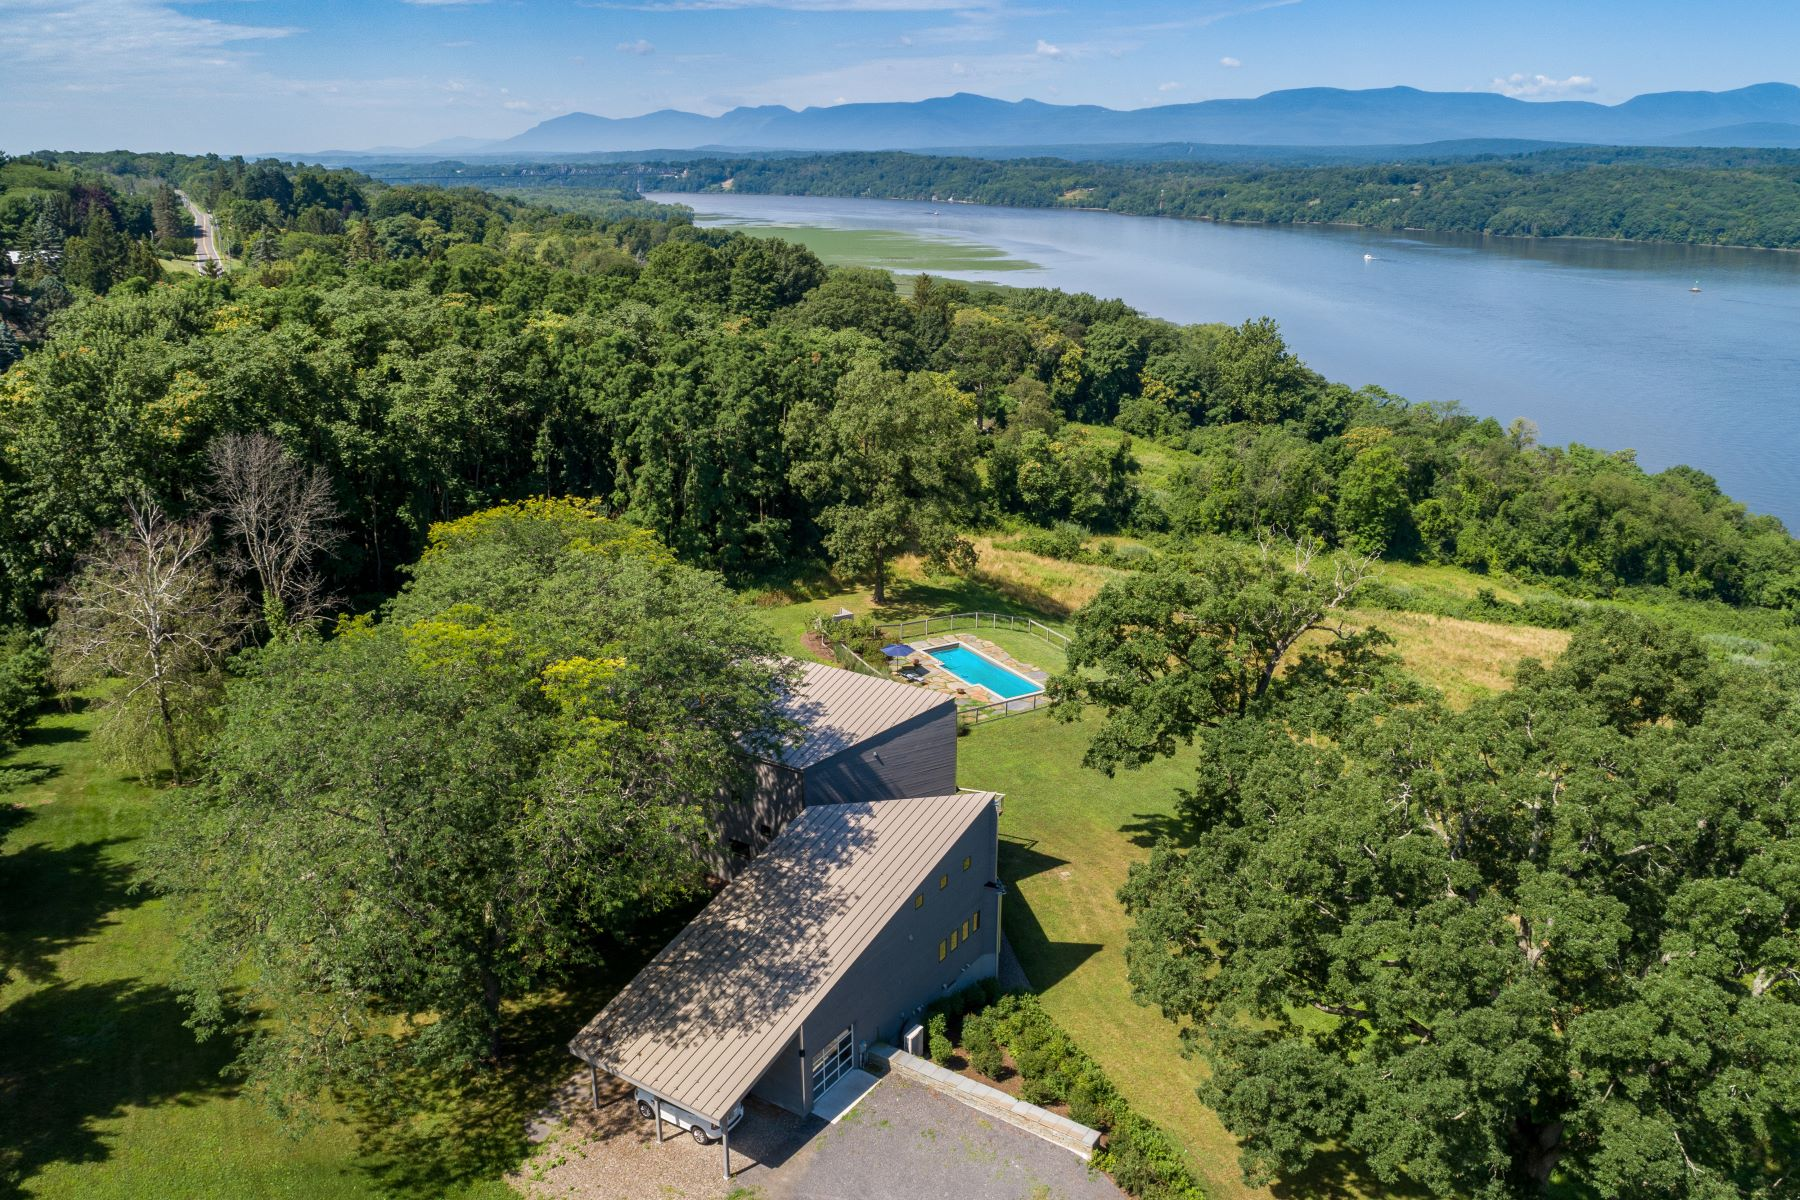 Single Family Homes for Active at Modernist Masterpiece On The Hudson 170 Mount Merino Greenport, New York 12534 United States